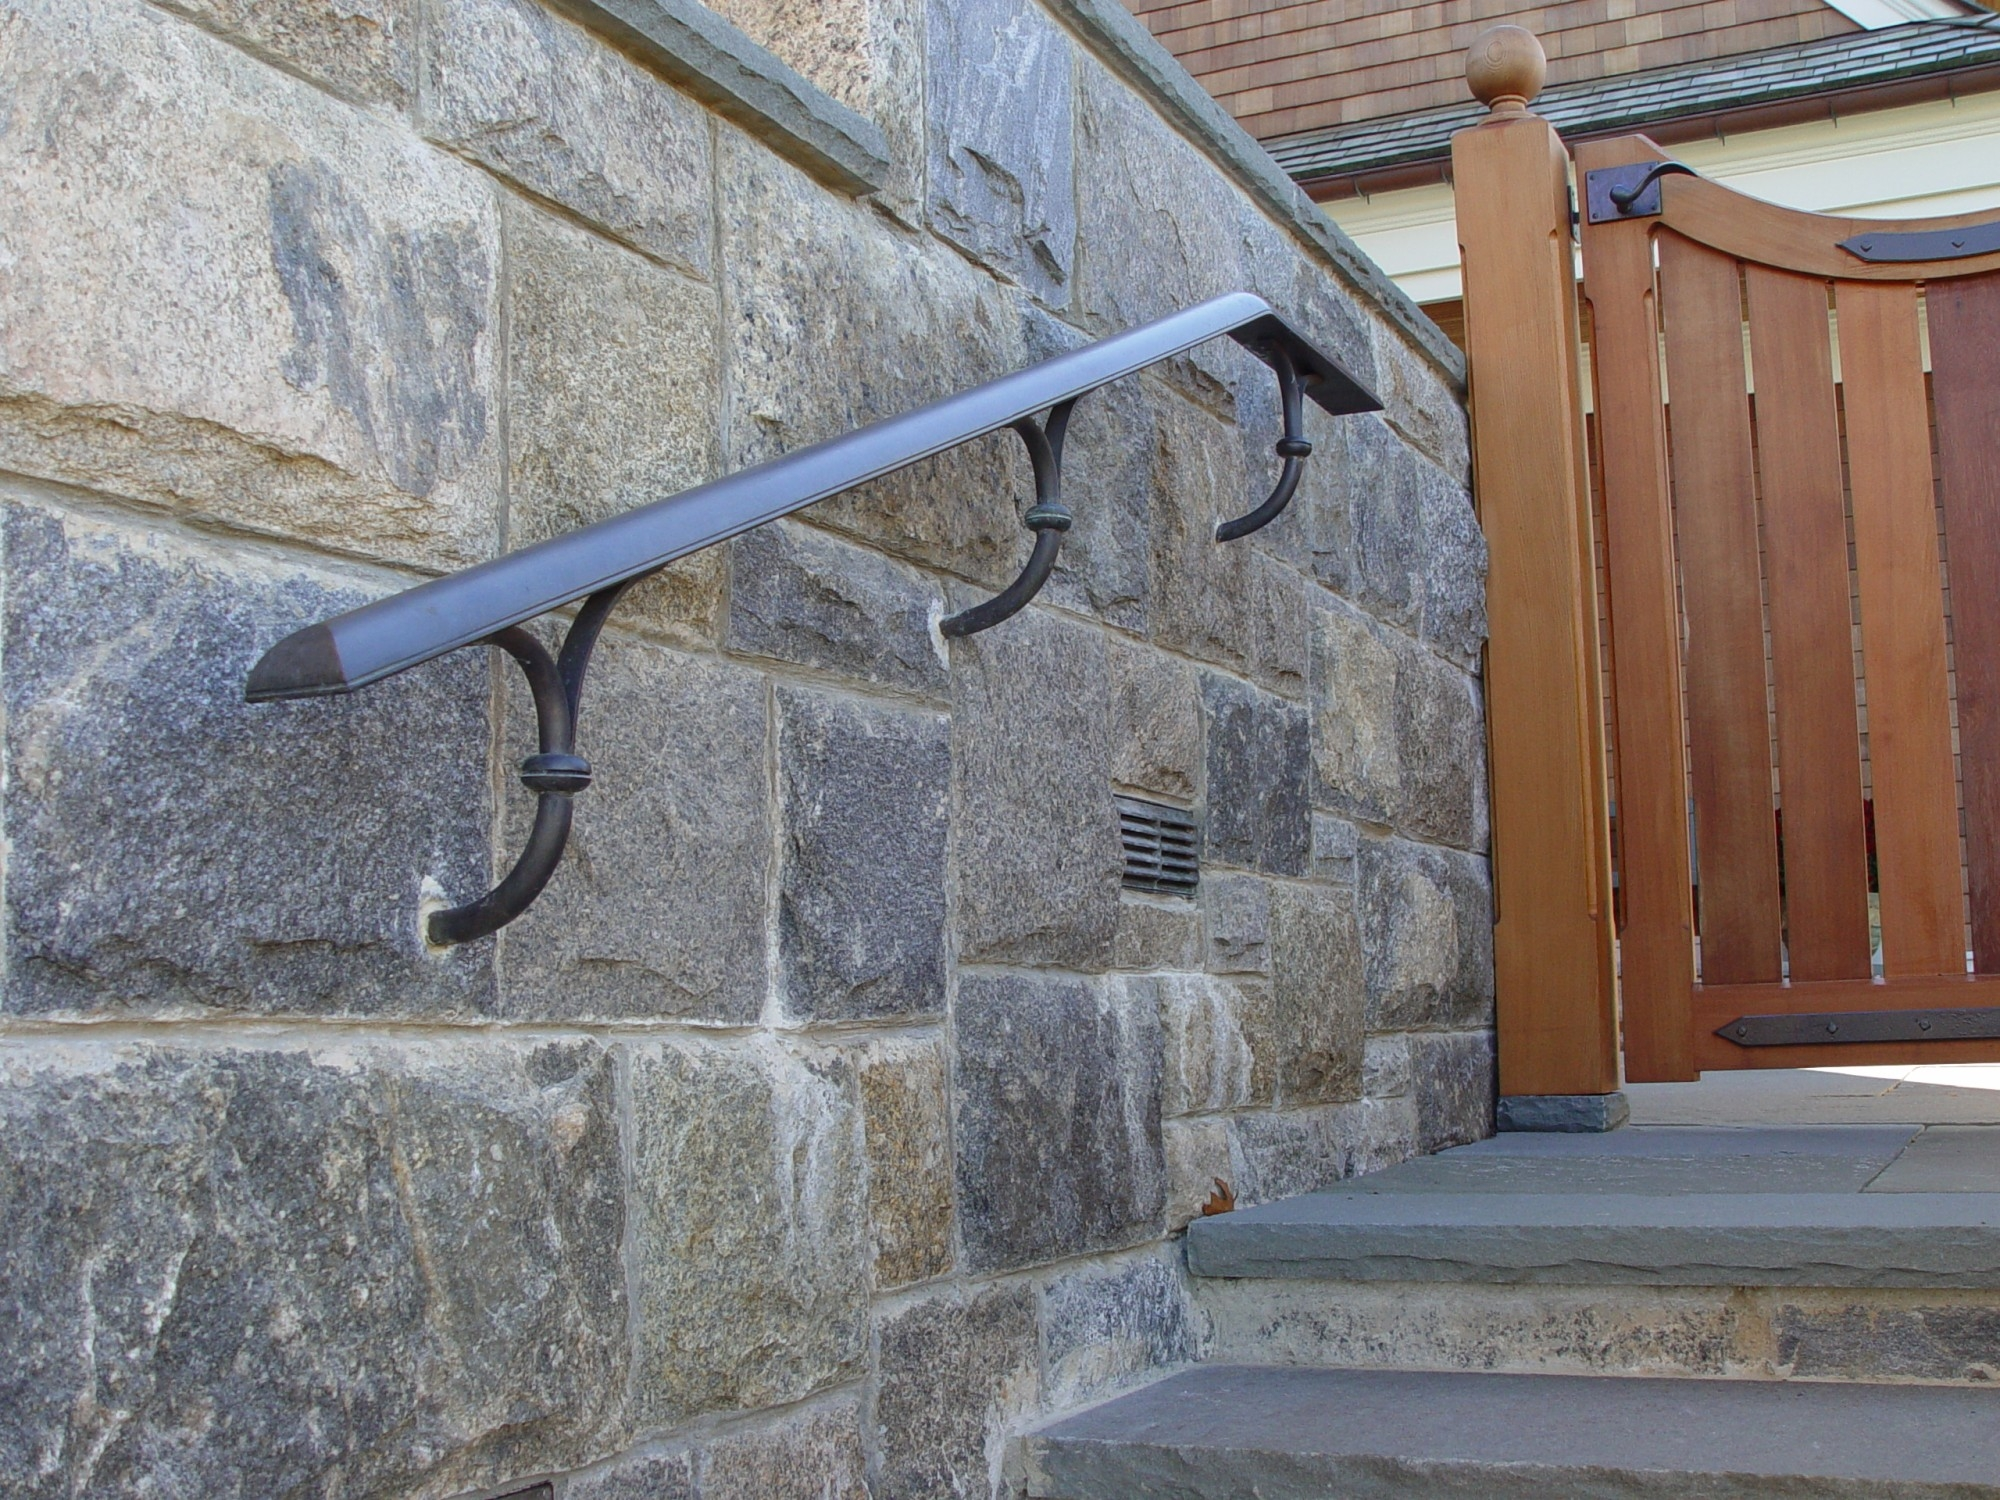 Architectural Metal Essentials Brass And Bronze Handrails | Brass Handrails For Stairs | Aluminum | Classic | Medallion | Cantilevered Spiral Stair | Wrought Iron Railing